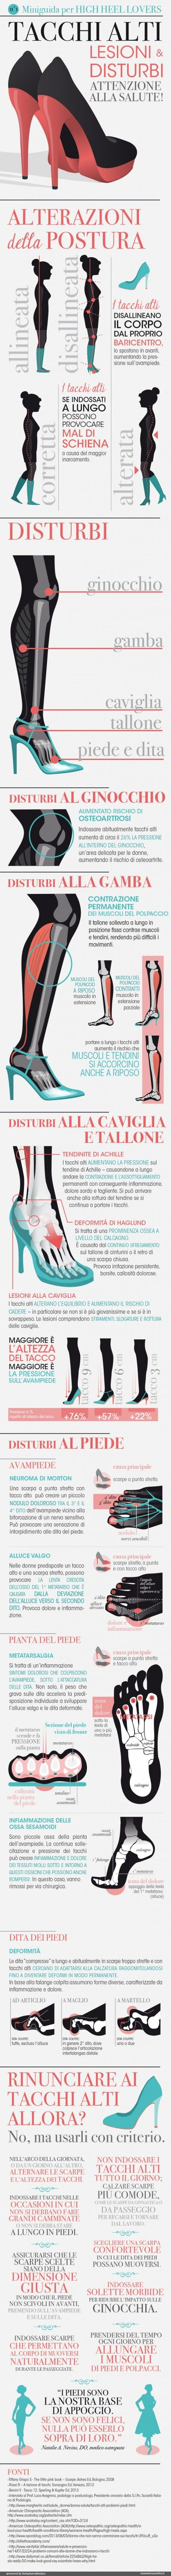 Miniguida per high Heel lovers: attenzione alla salute! for Esseredonnaonline.it, design by Kleland studio di Alice Kle Borghi